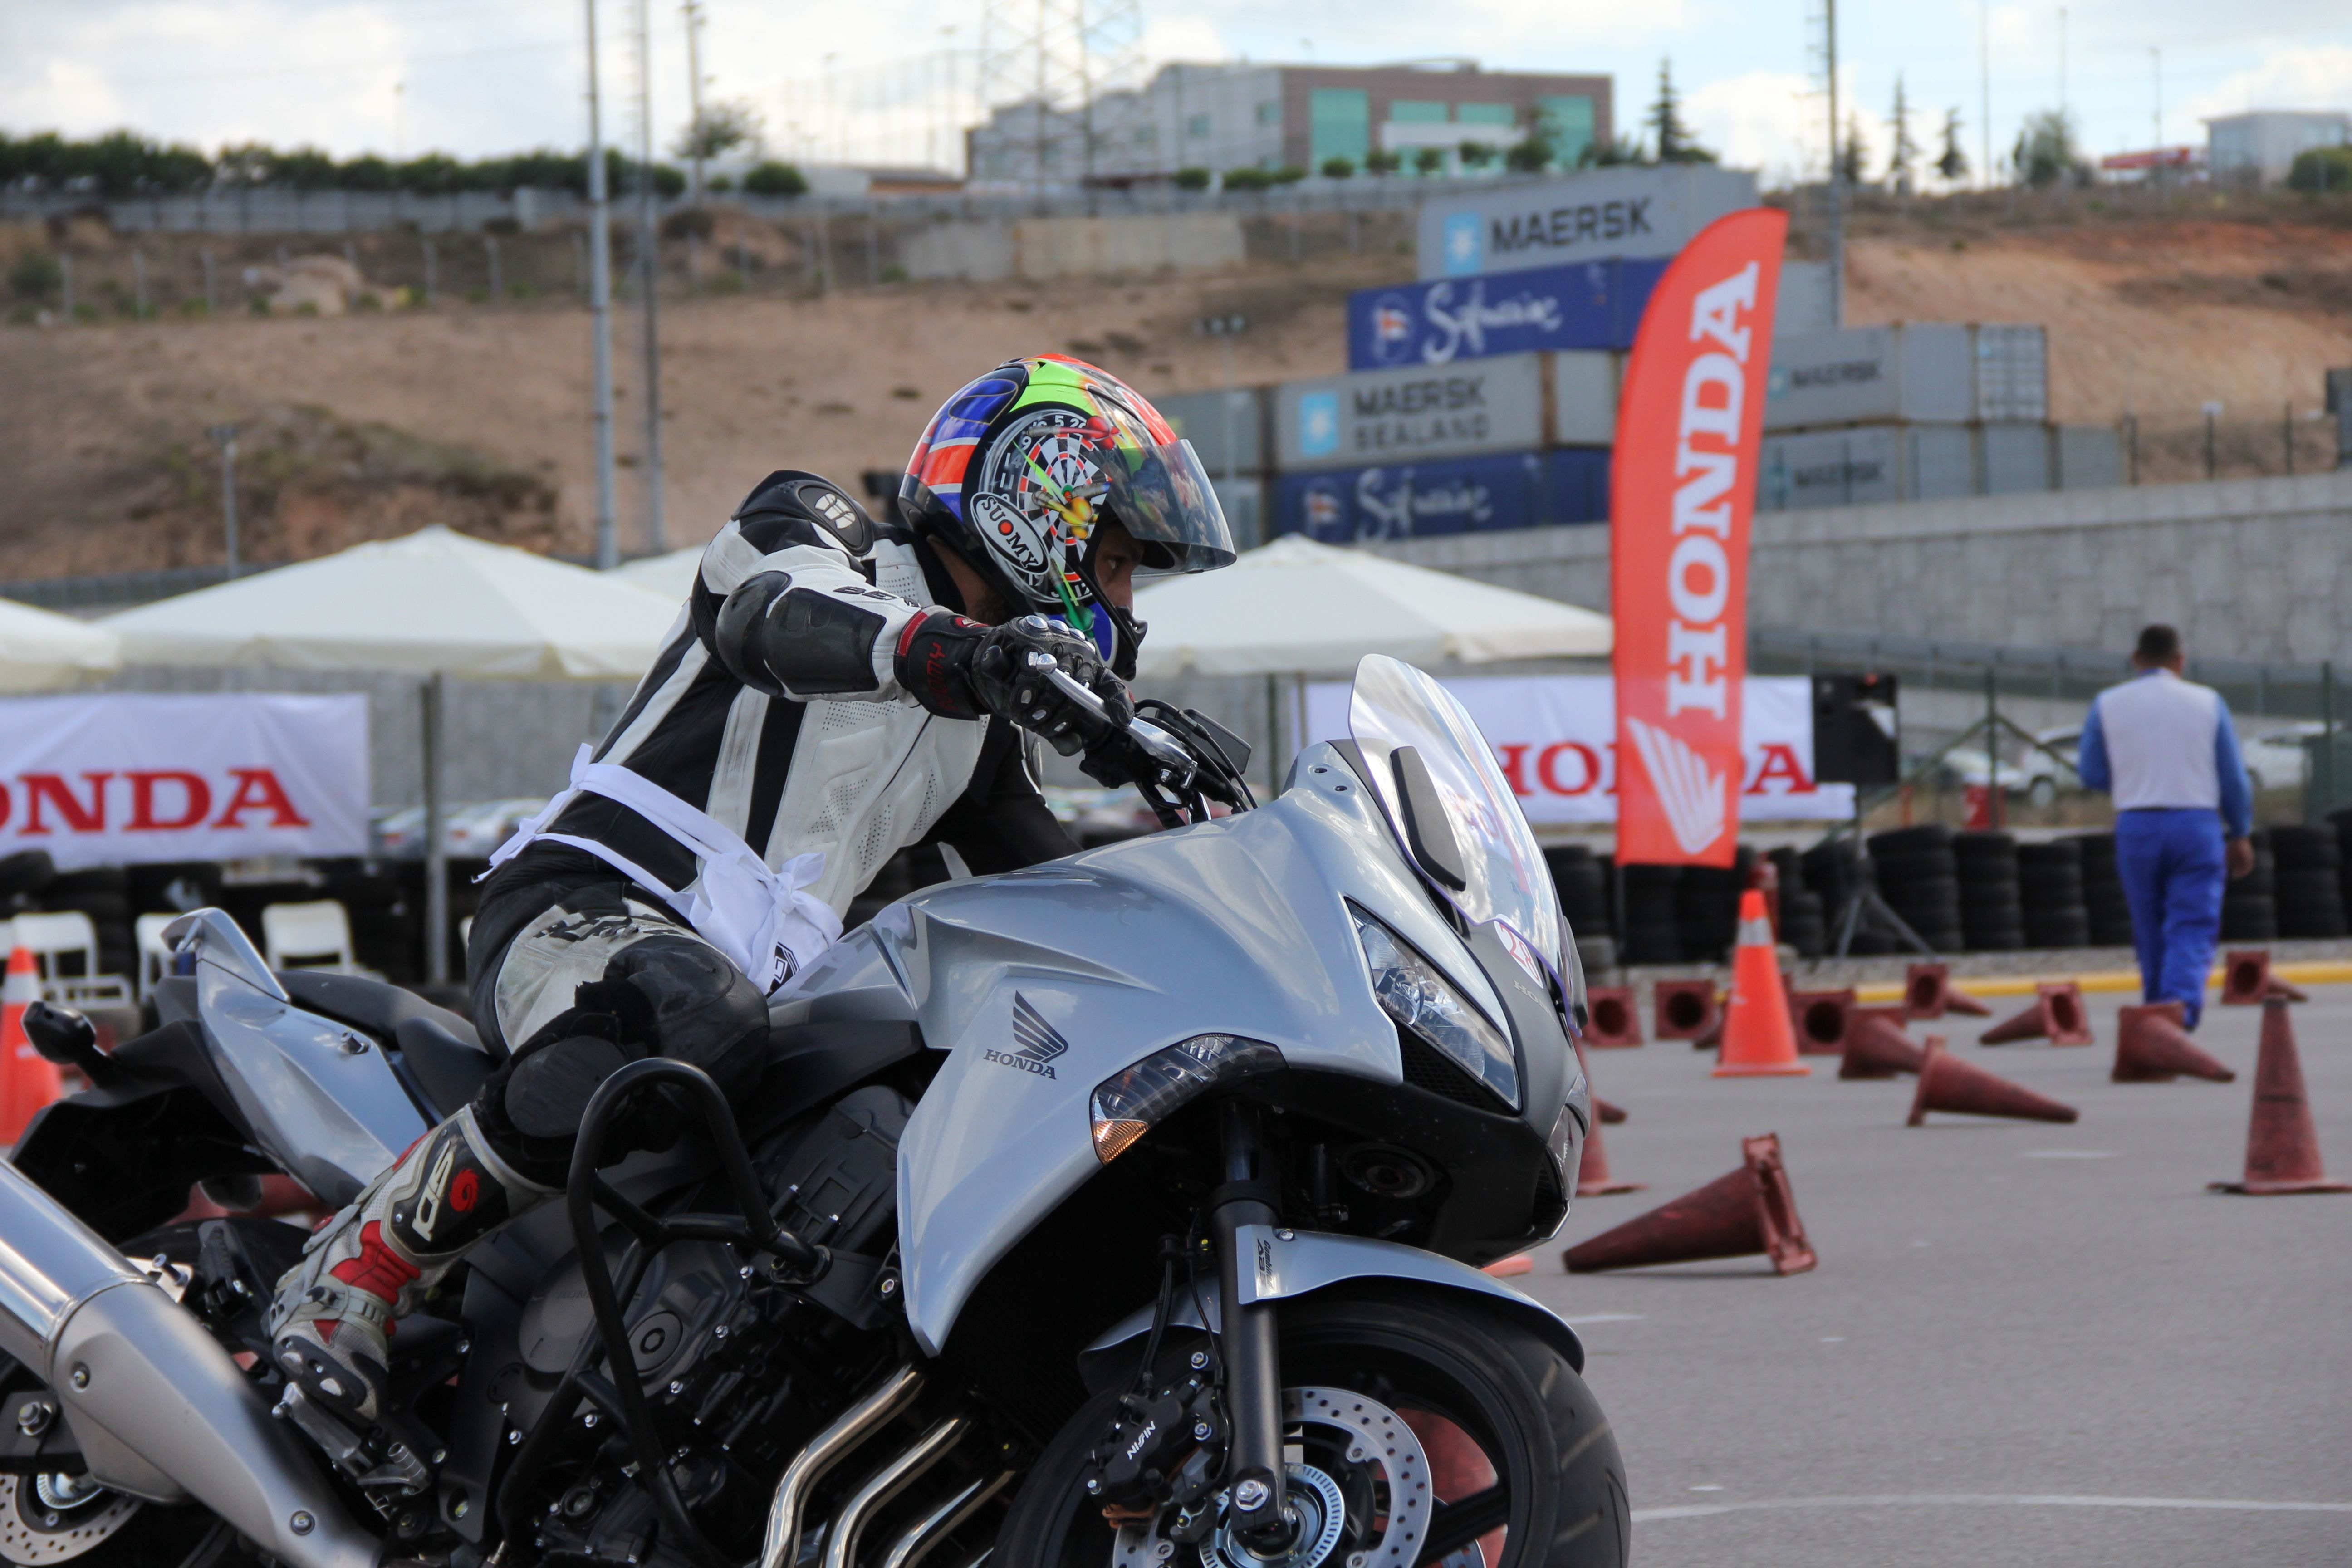 honda turkey, motorcycle users to integrate, to stress the